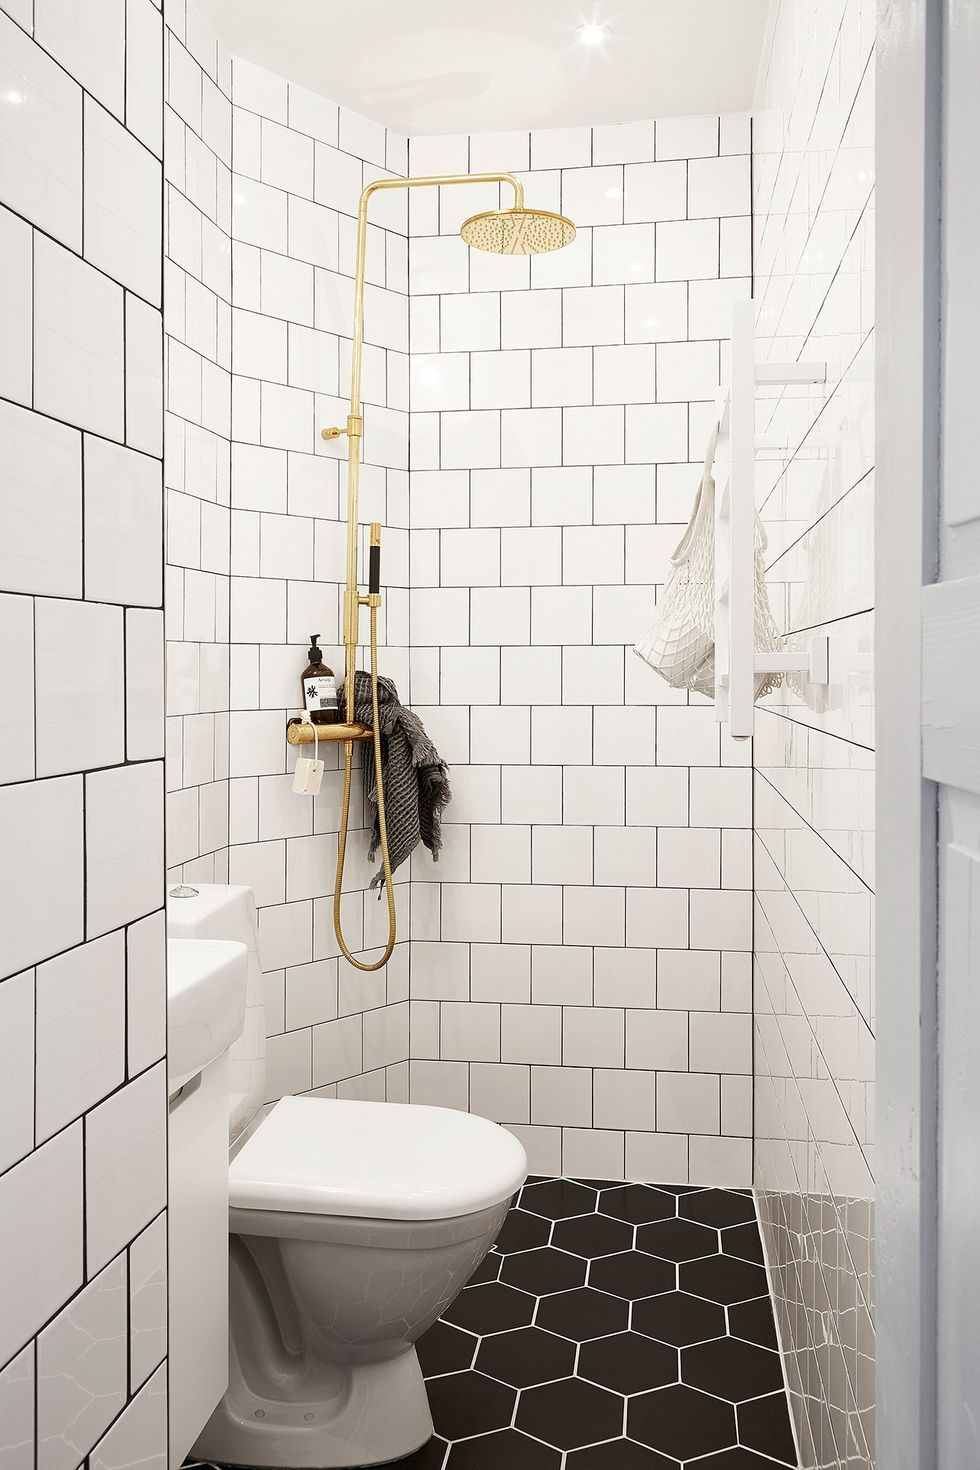 35 Design Ideas That Will Make Small Bathrooms Feel So Much Bigger In 2020 Small Bathroom Solutions Bathroom Design Small Very Small Bathroom